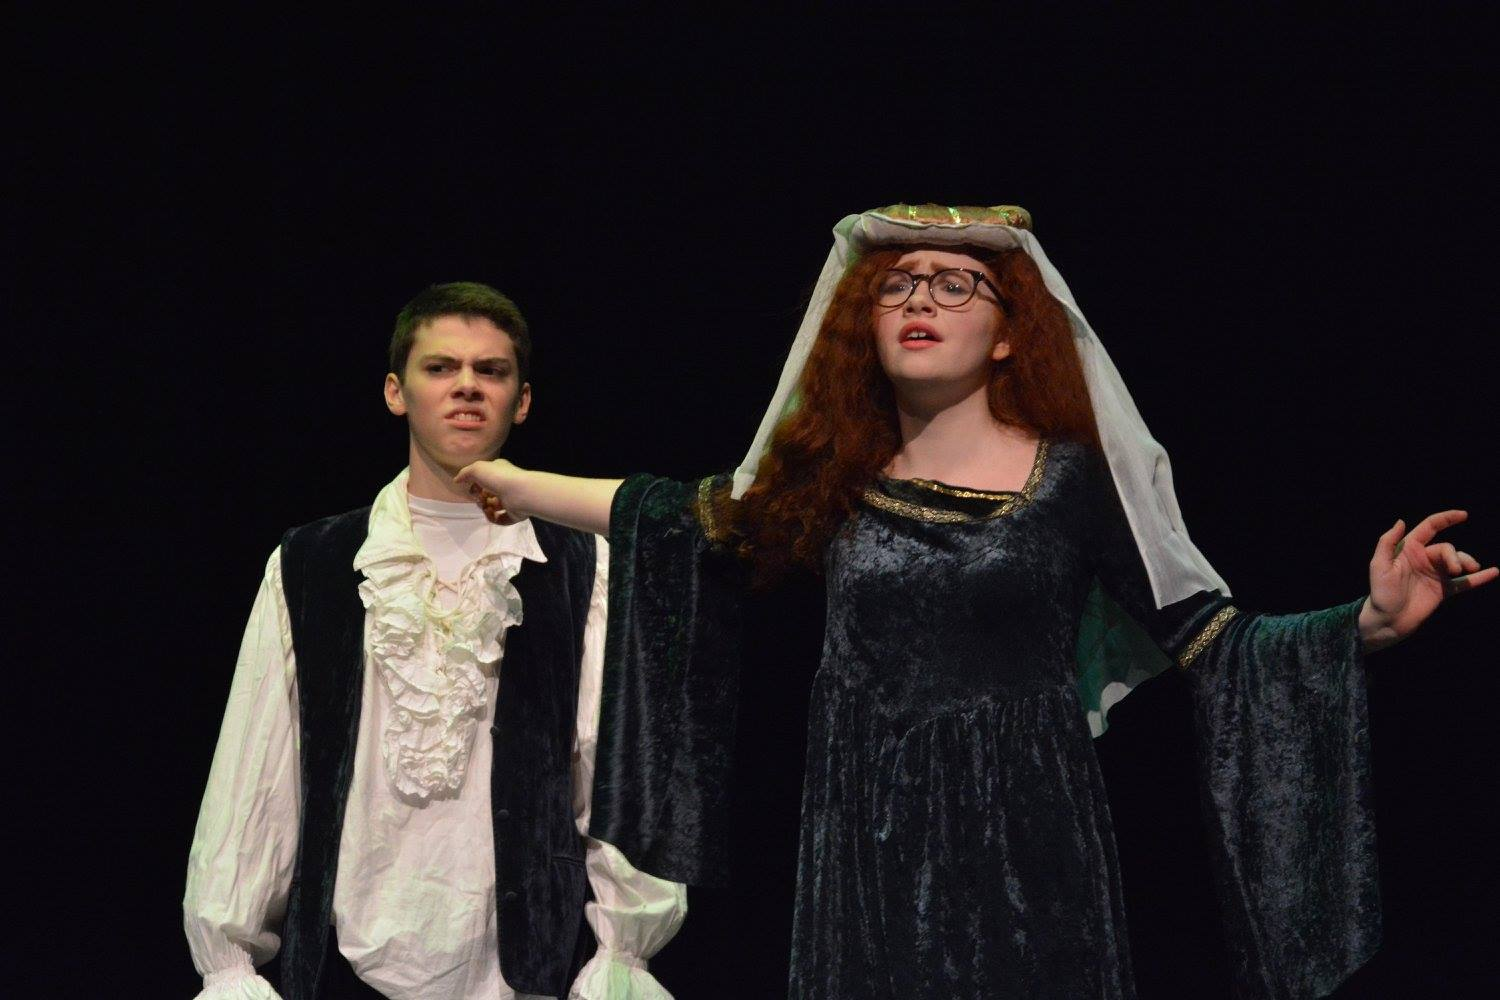 Junior+Lillian+Pettigrew+and+9th+grader+Henry+Vliestra+play+husband+and+wife+in+the+Shakespearean+spoof+in+the+One+Acts+on+Jan.+27.